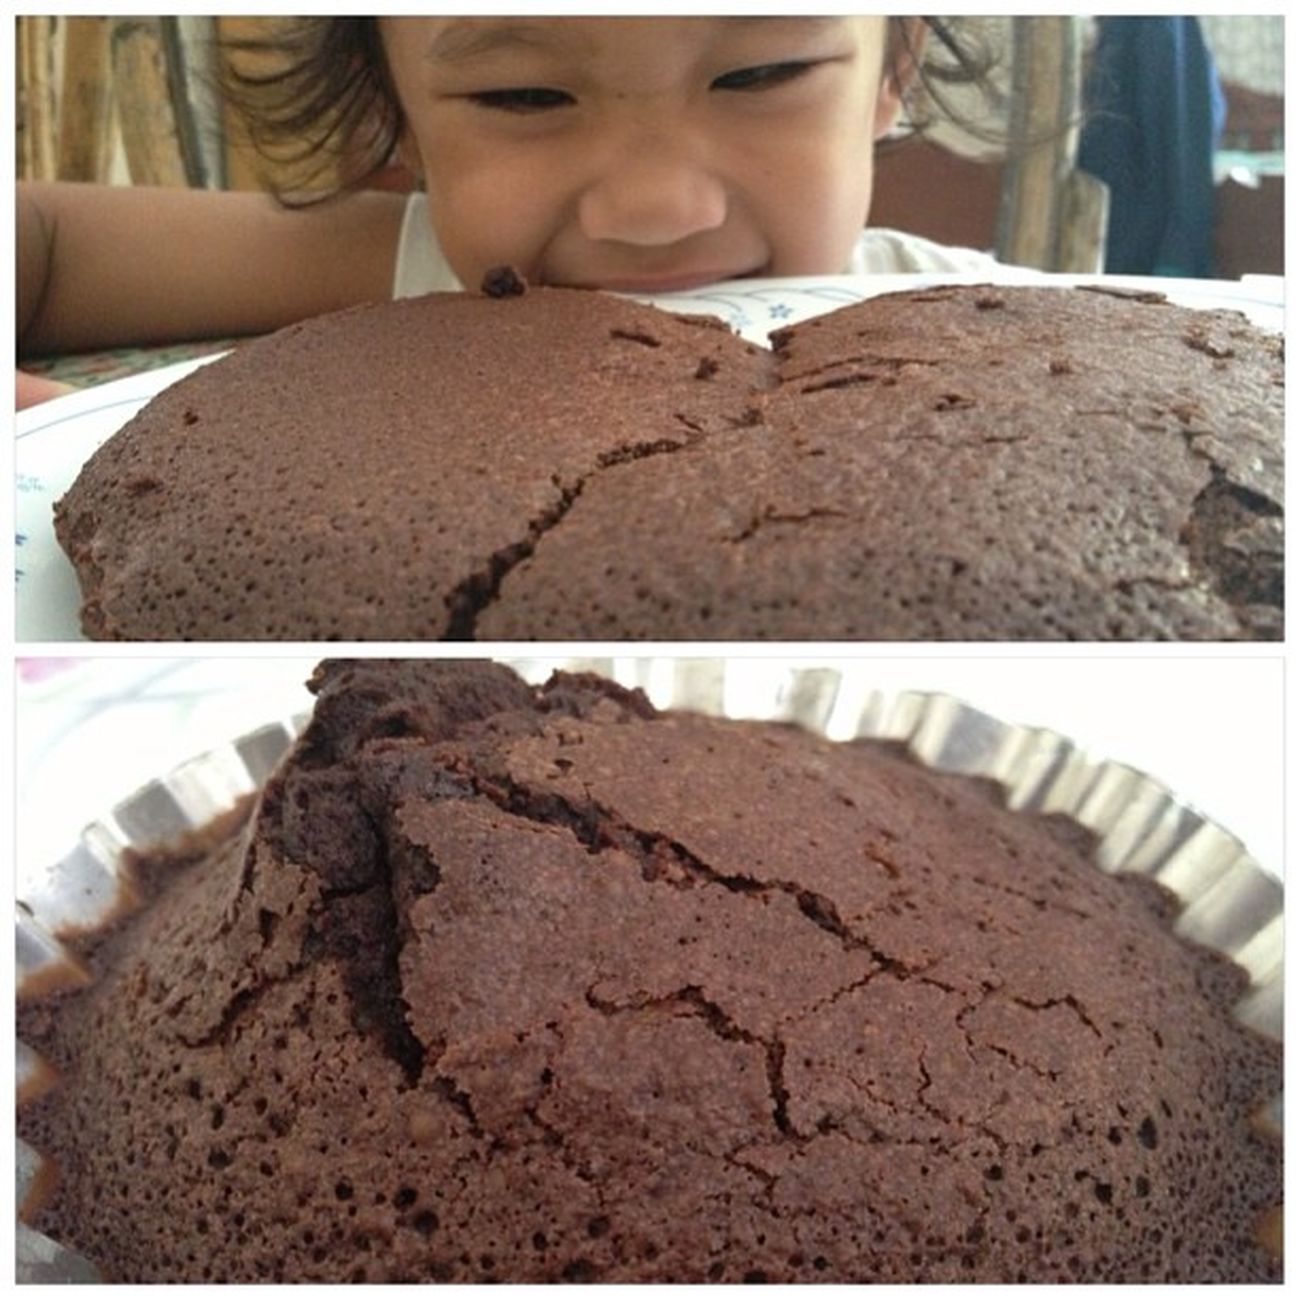 That smile... Brownie Eruption.